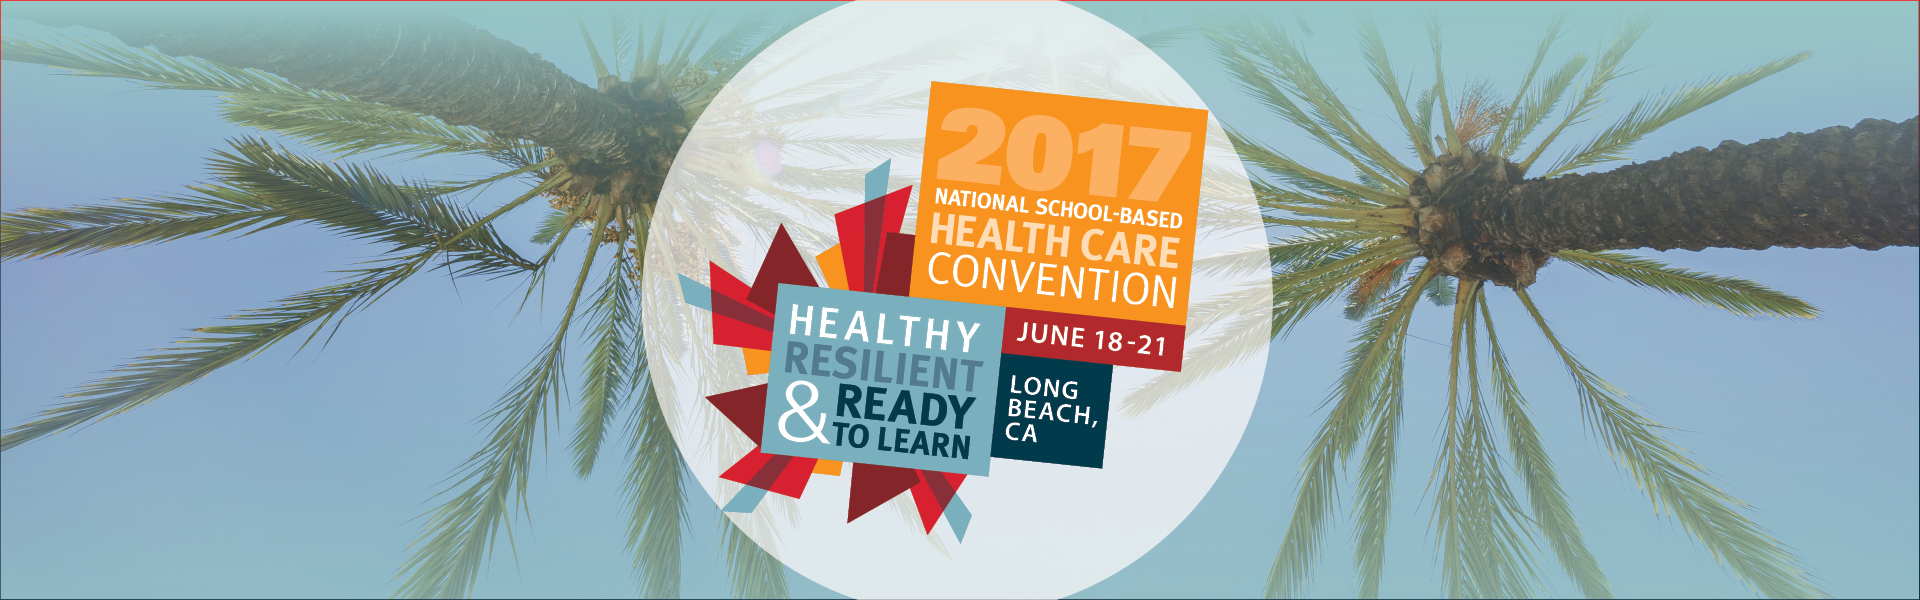 graphic promoting the 2017 Annual Convention